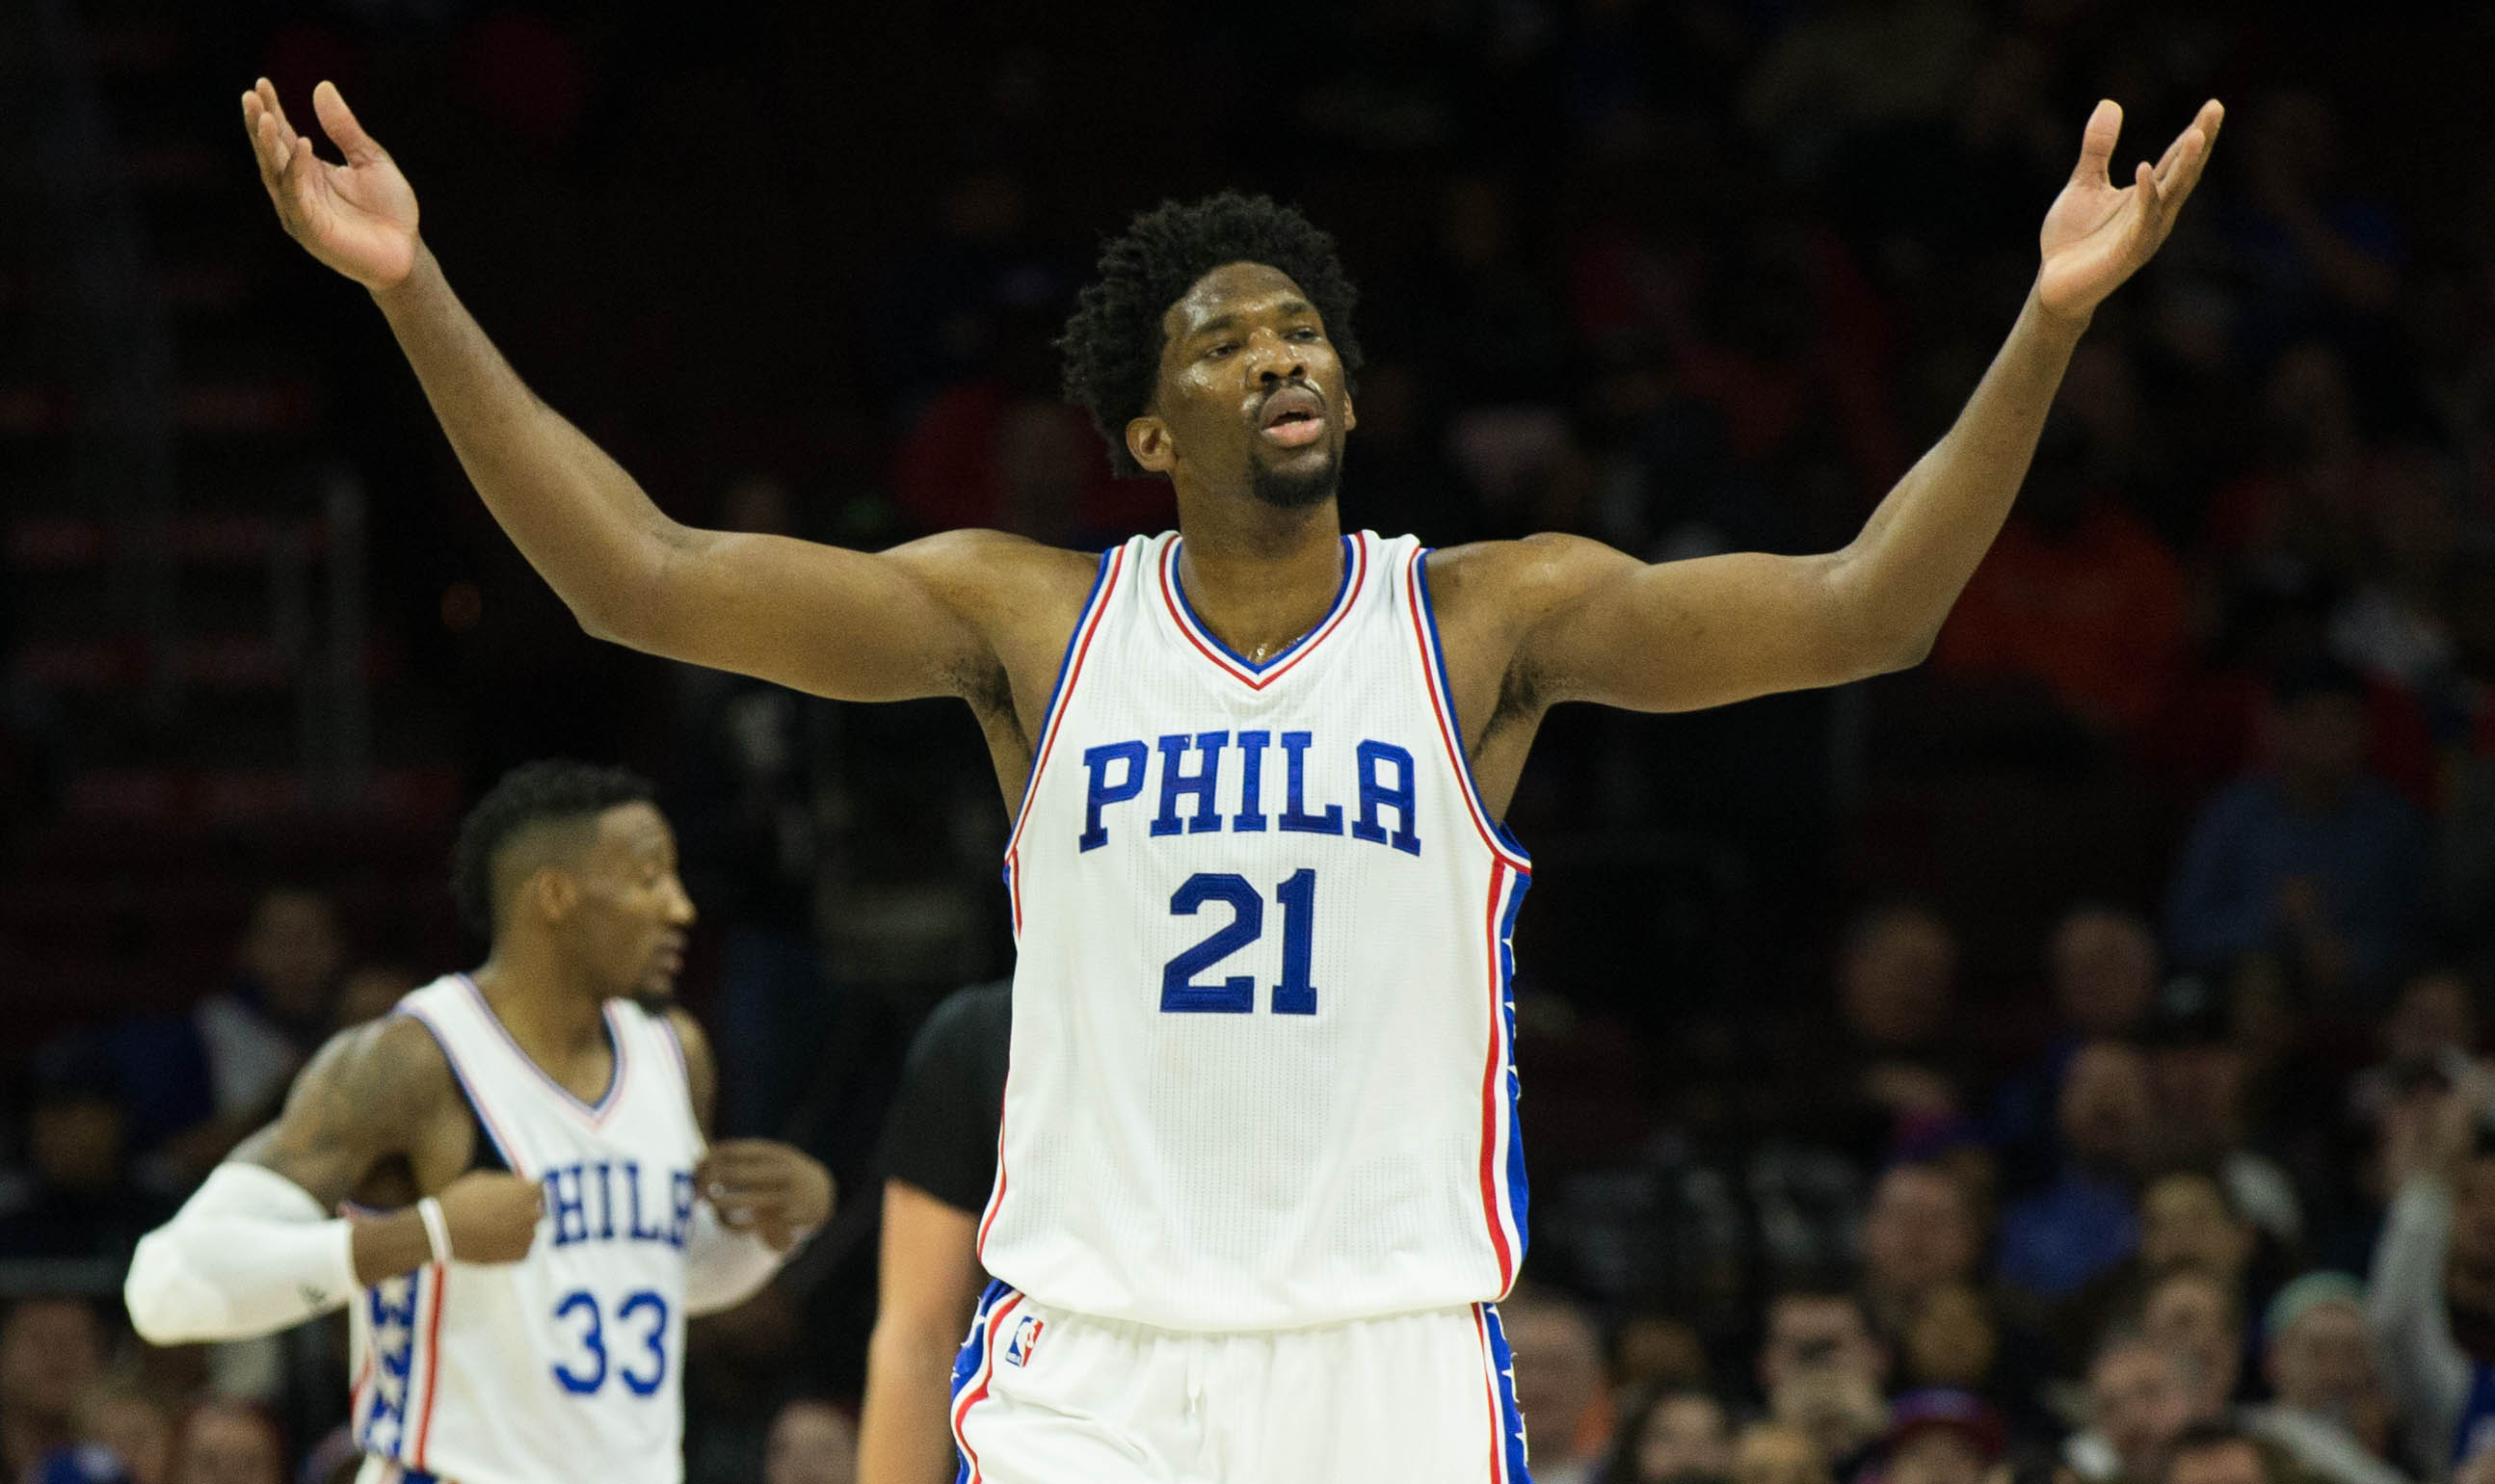 Jan 3, 2017; Philadelphia, PA, USA; Philadelphia 76ers center Joel Embiid (21) reacts after being fouled against the Minnesota Timberwolves during the second quarter at Wells Fargo Center. Mandatory Credit: Bill Streicher-USA TODAY Sports